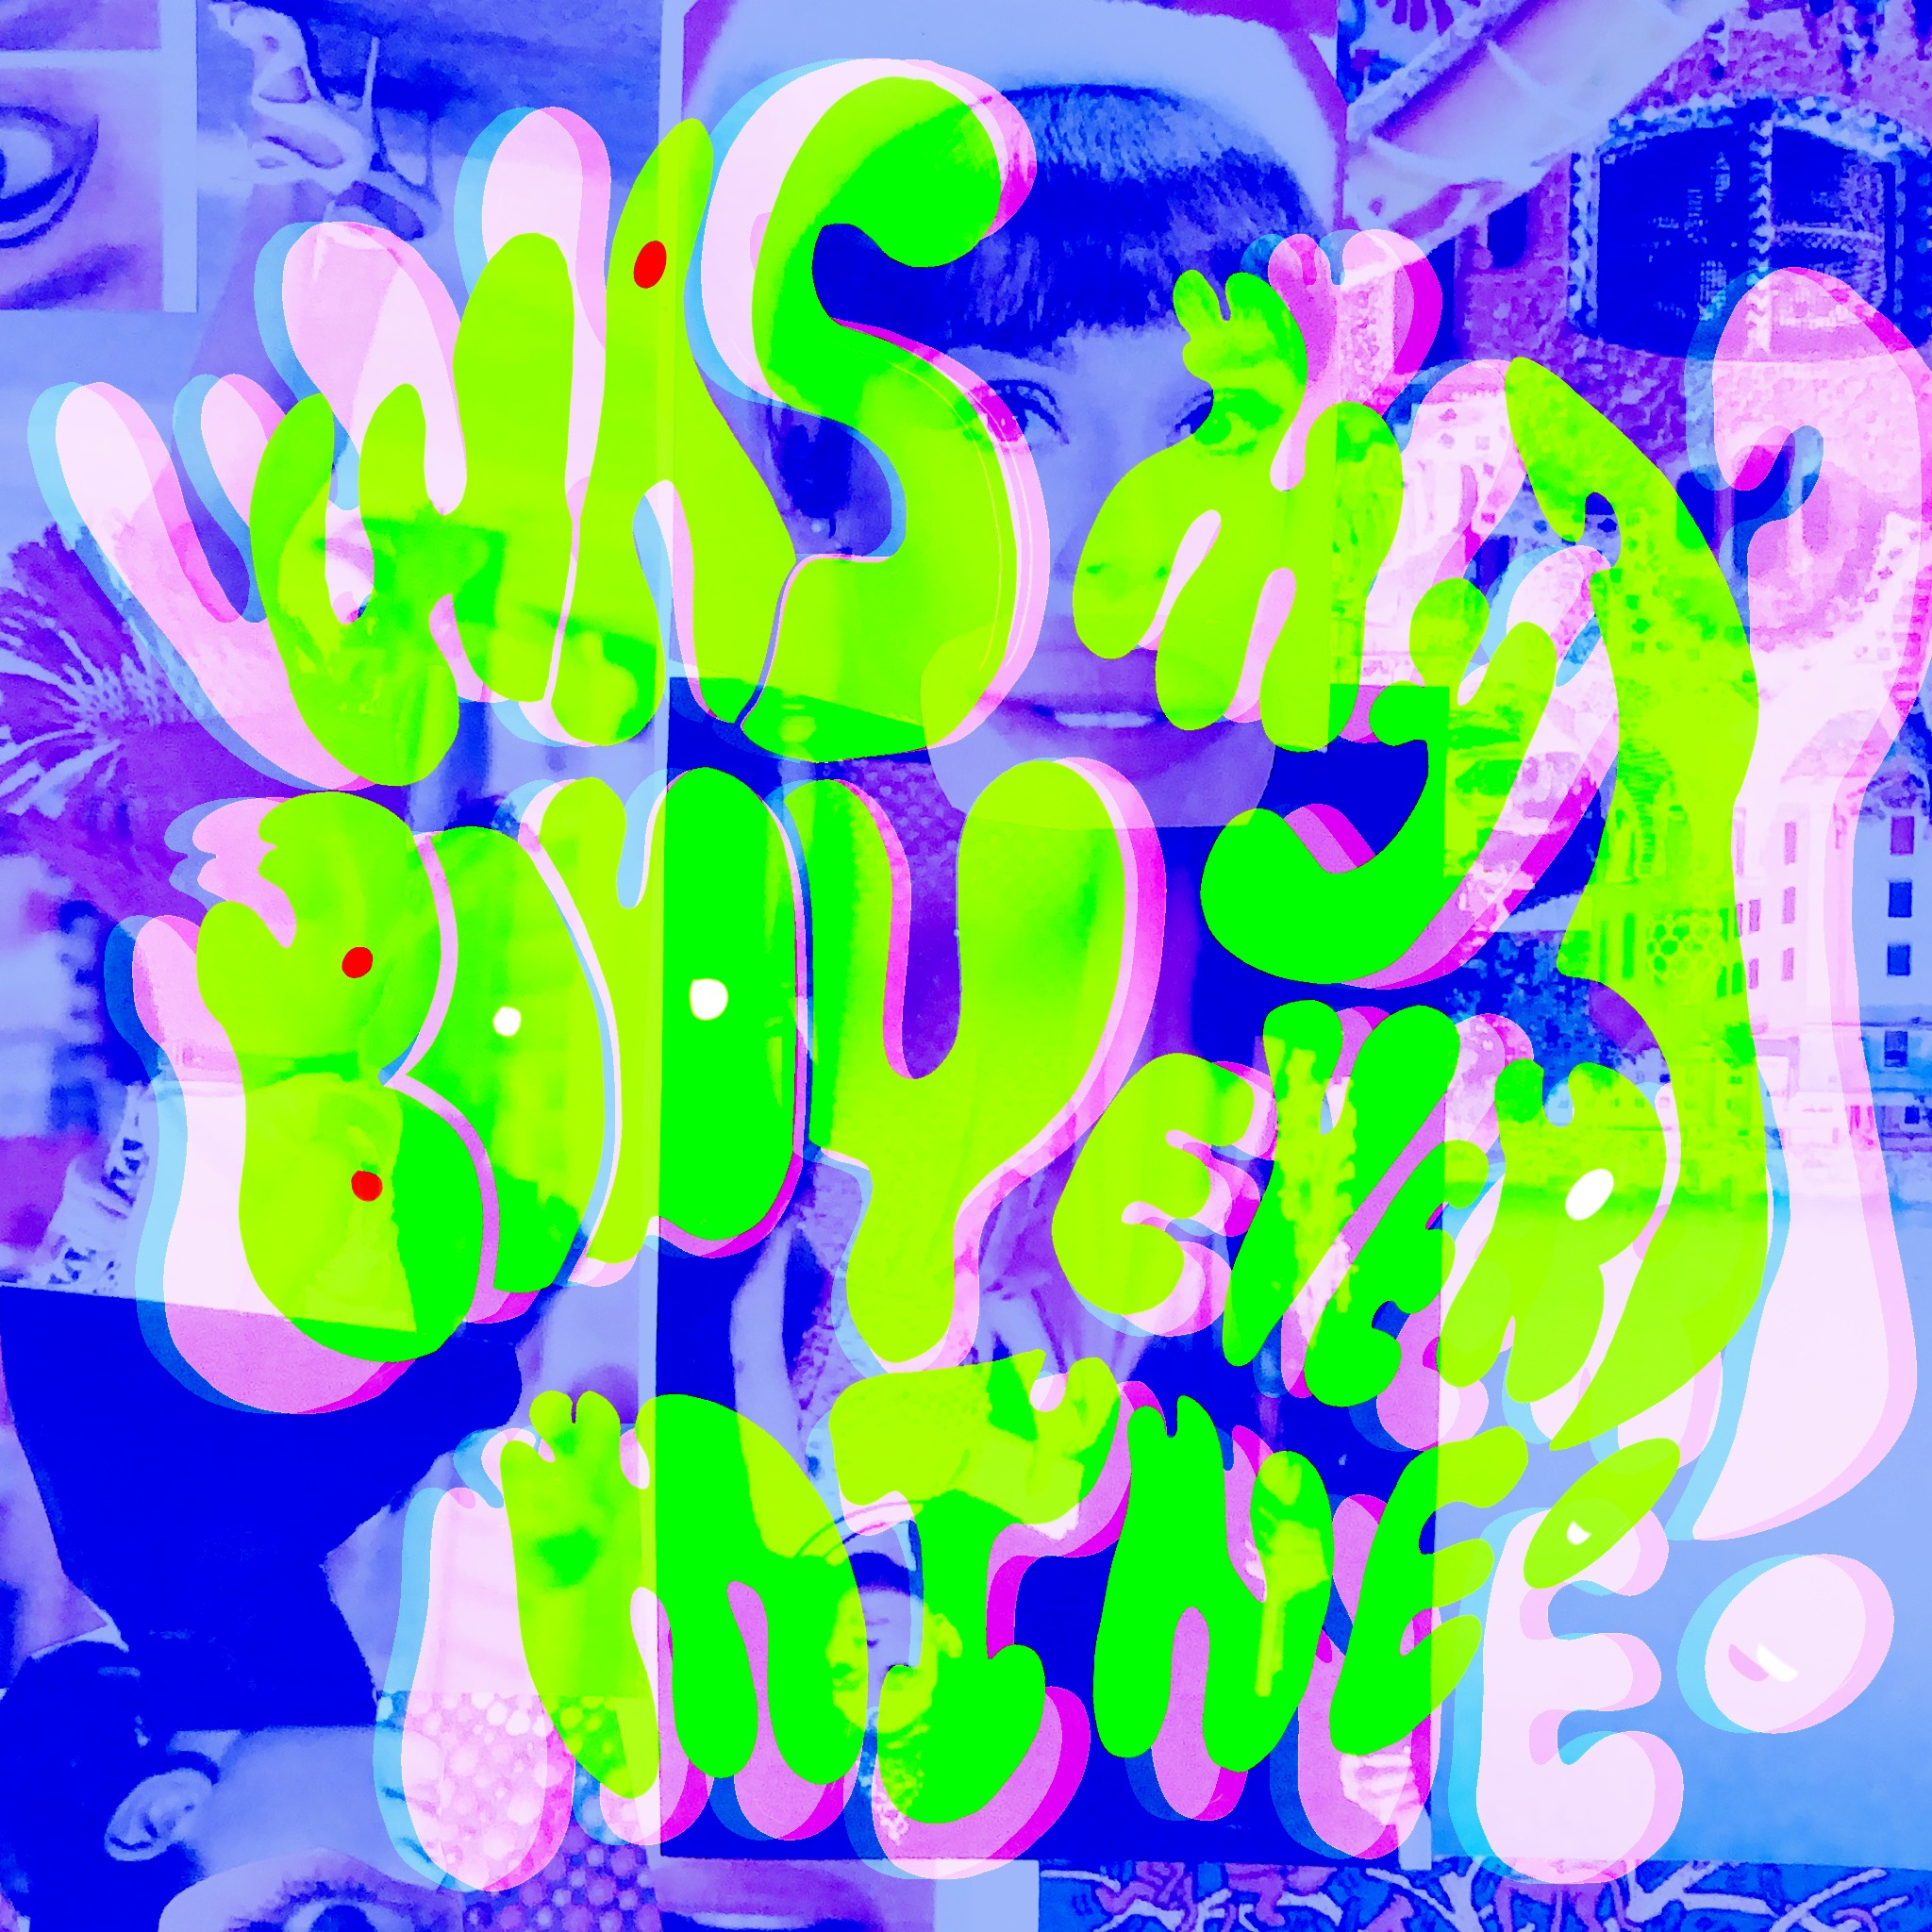 green and pink wavy text over blue background saying was my body ever mine